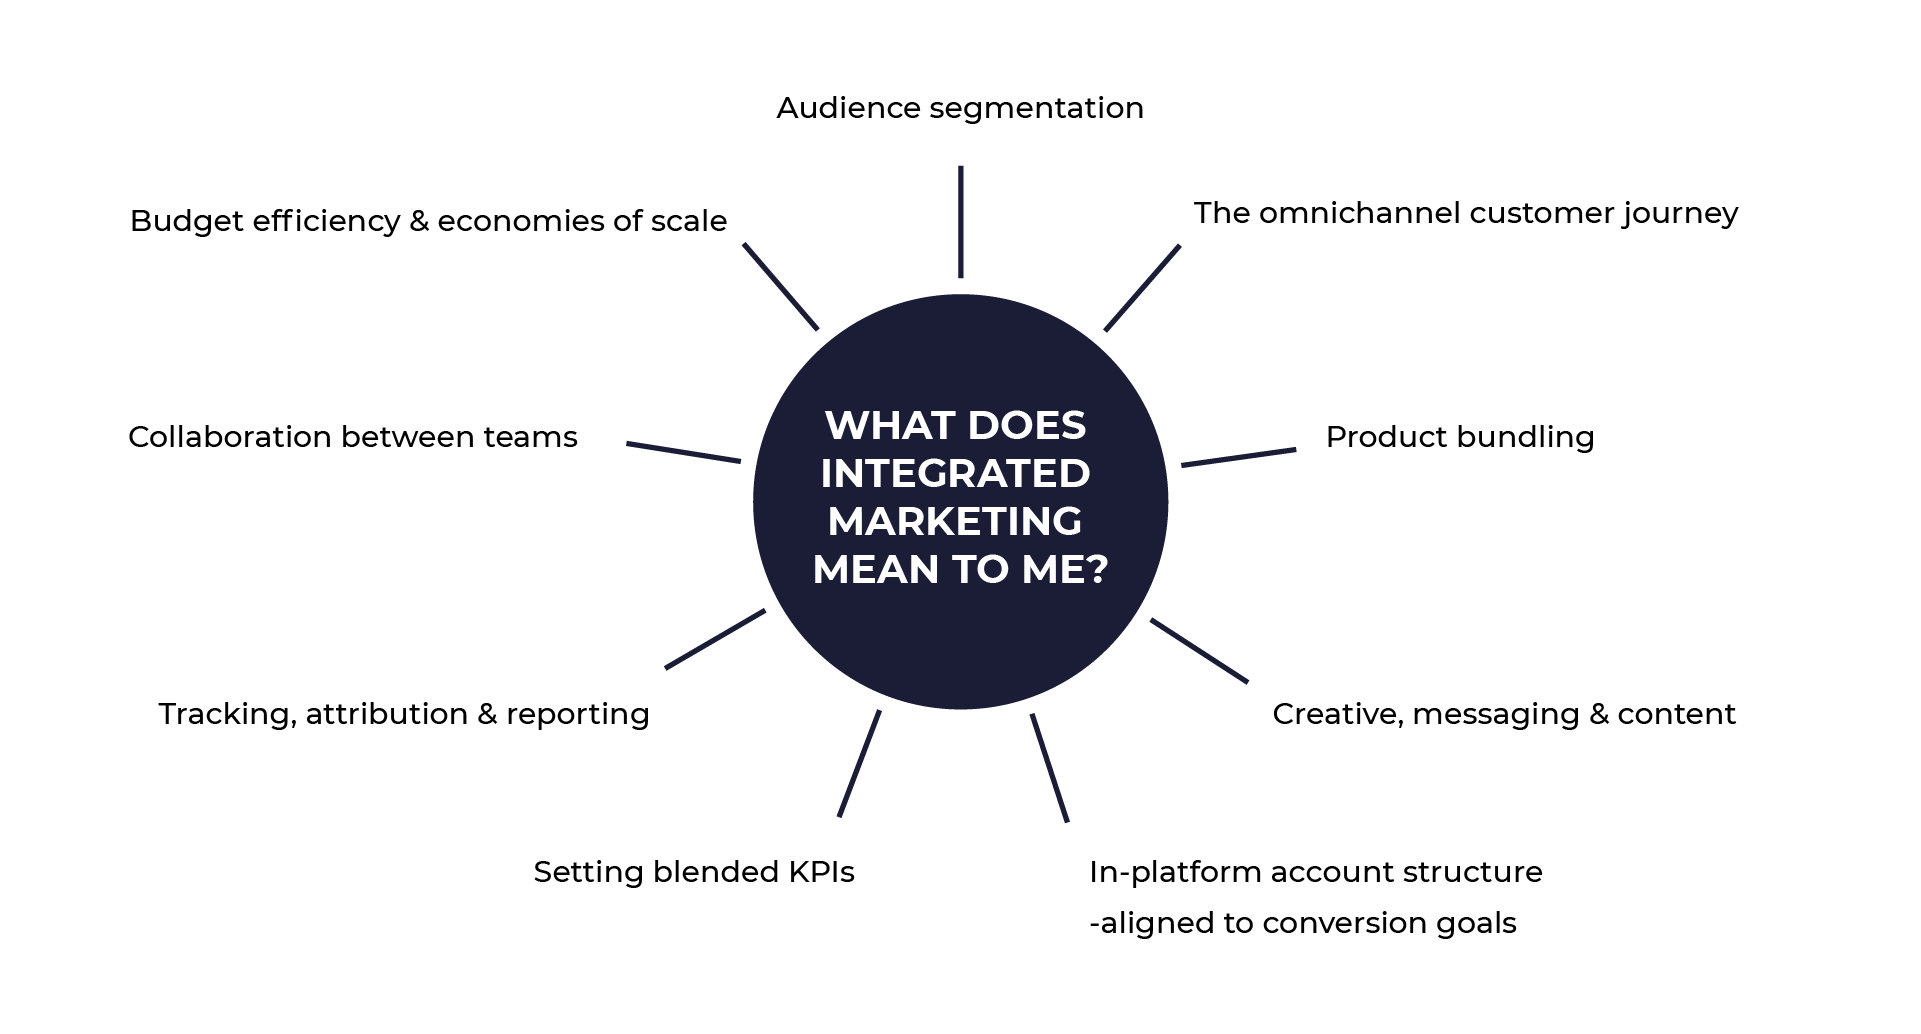 diagram describing elements of what integrated marketing means to you.